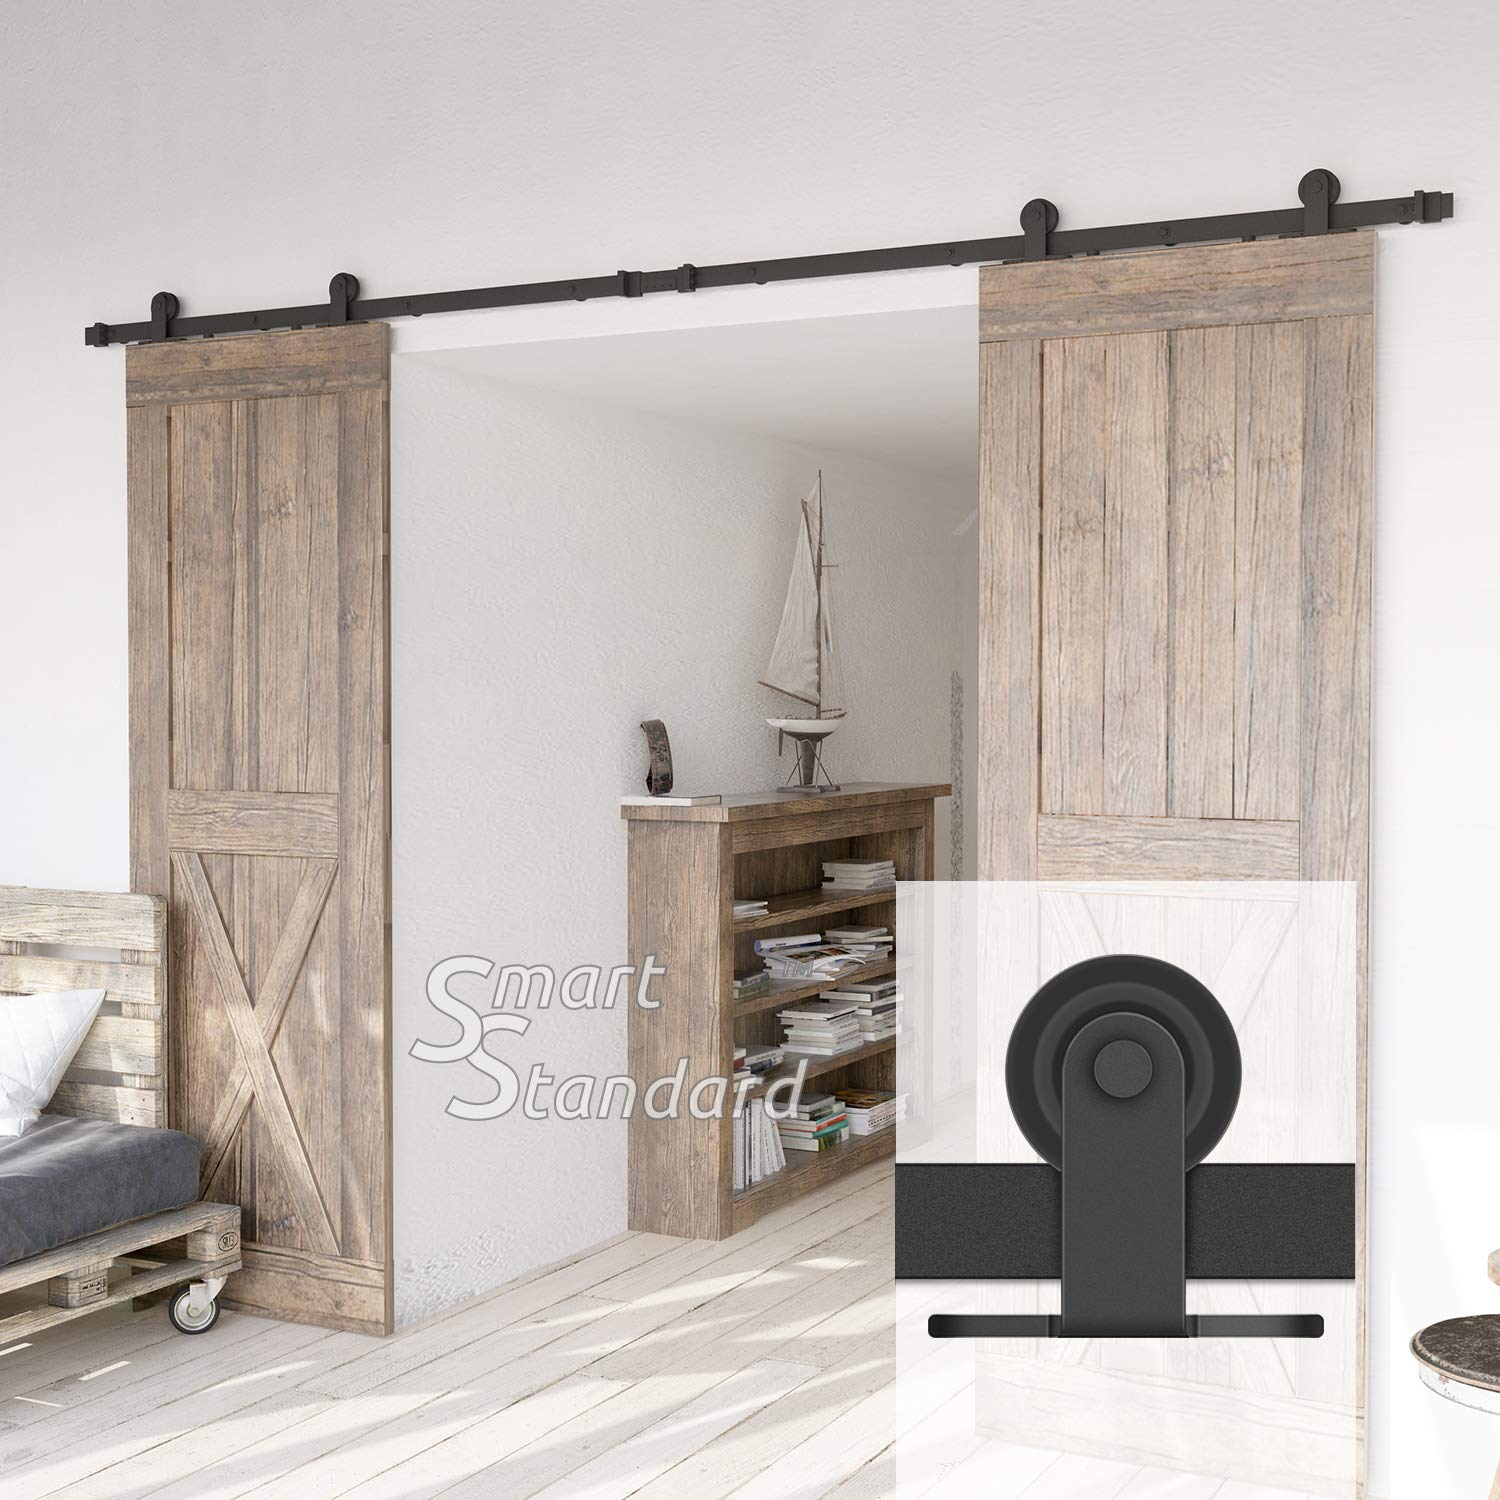 10ft Heavy Duty Sturdy Double Door Sliding Barn Door Hardware Kit - Super Smoothly and Quietly - Simple and Easy to Install - Includes Step-by-Step Instruction -Fit 30'' Wide Door Panel(T Shape Hanger)